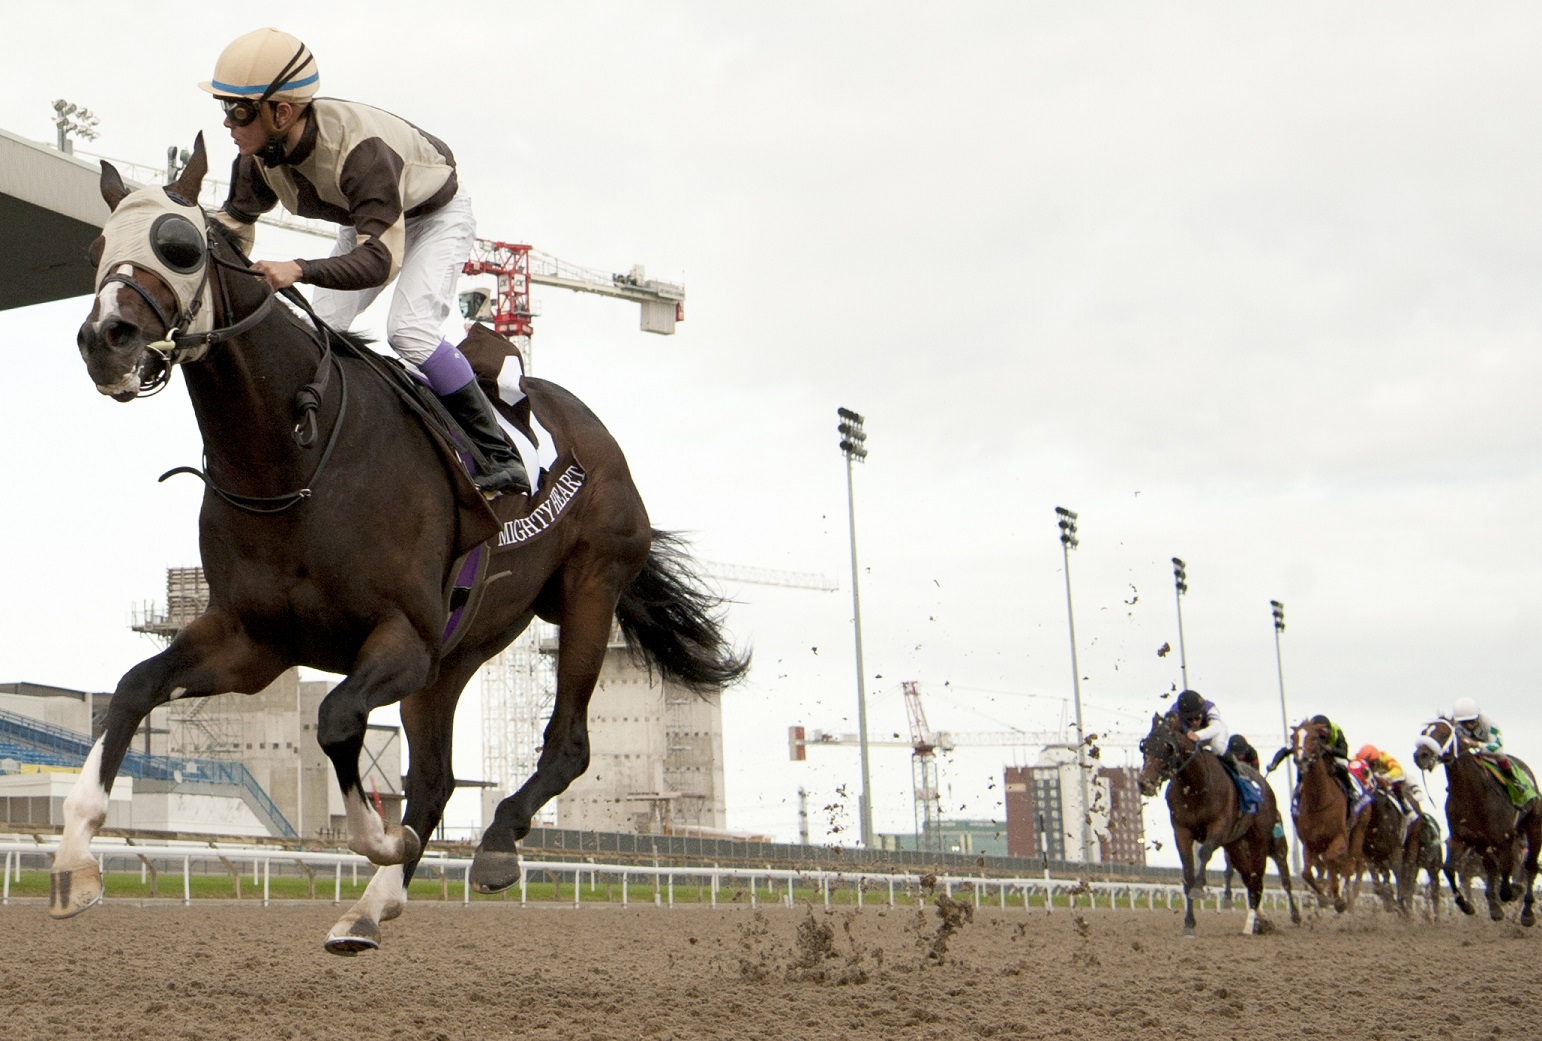 Mighty Heart leading the race for the 161st Queen's Plate at woodbine racetrack